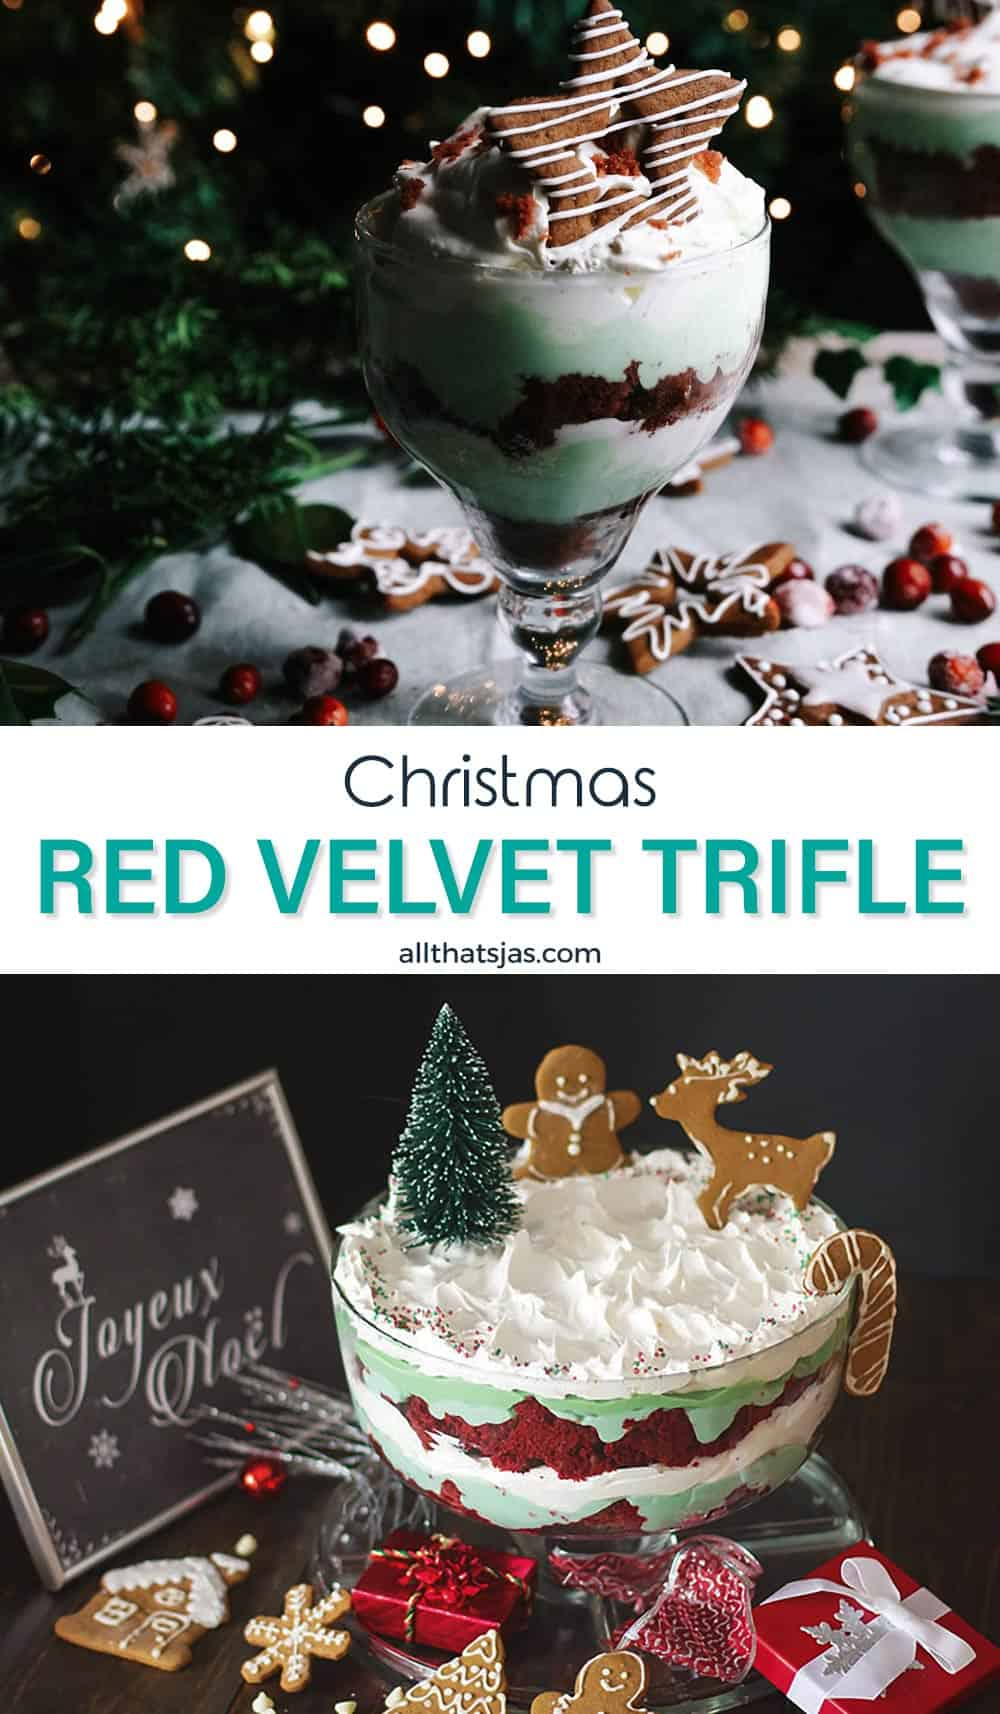 Two photo image of the Christmas trifle with text in the middle